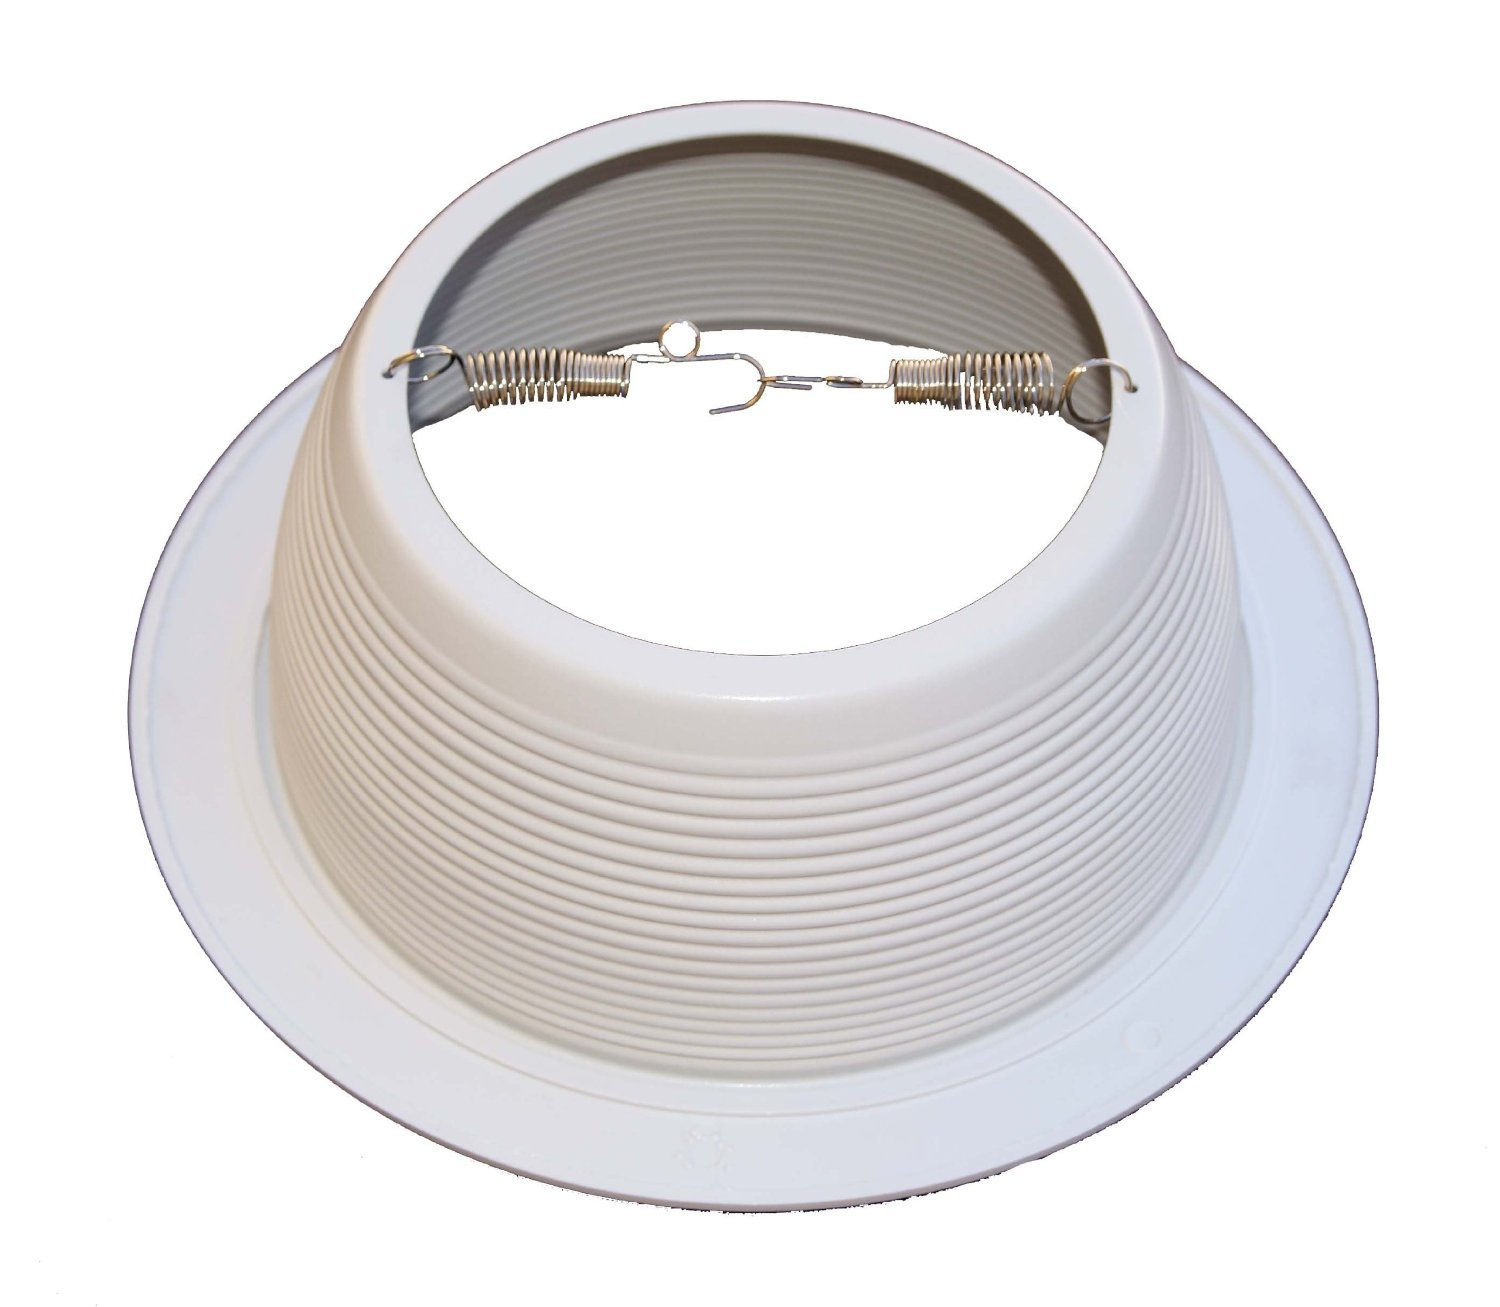 6 inch white baffle recessed can light trim replaces halo 310 w 6 inch white baffle recessed can light trim replaces halo 310 w juno 24w wh 12 pack recessed light fixture trims amazon mozeypictures